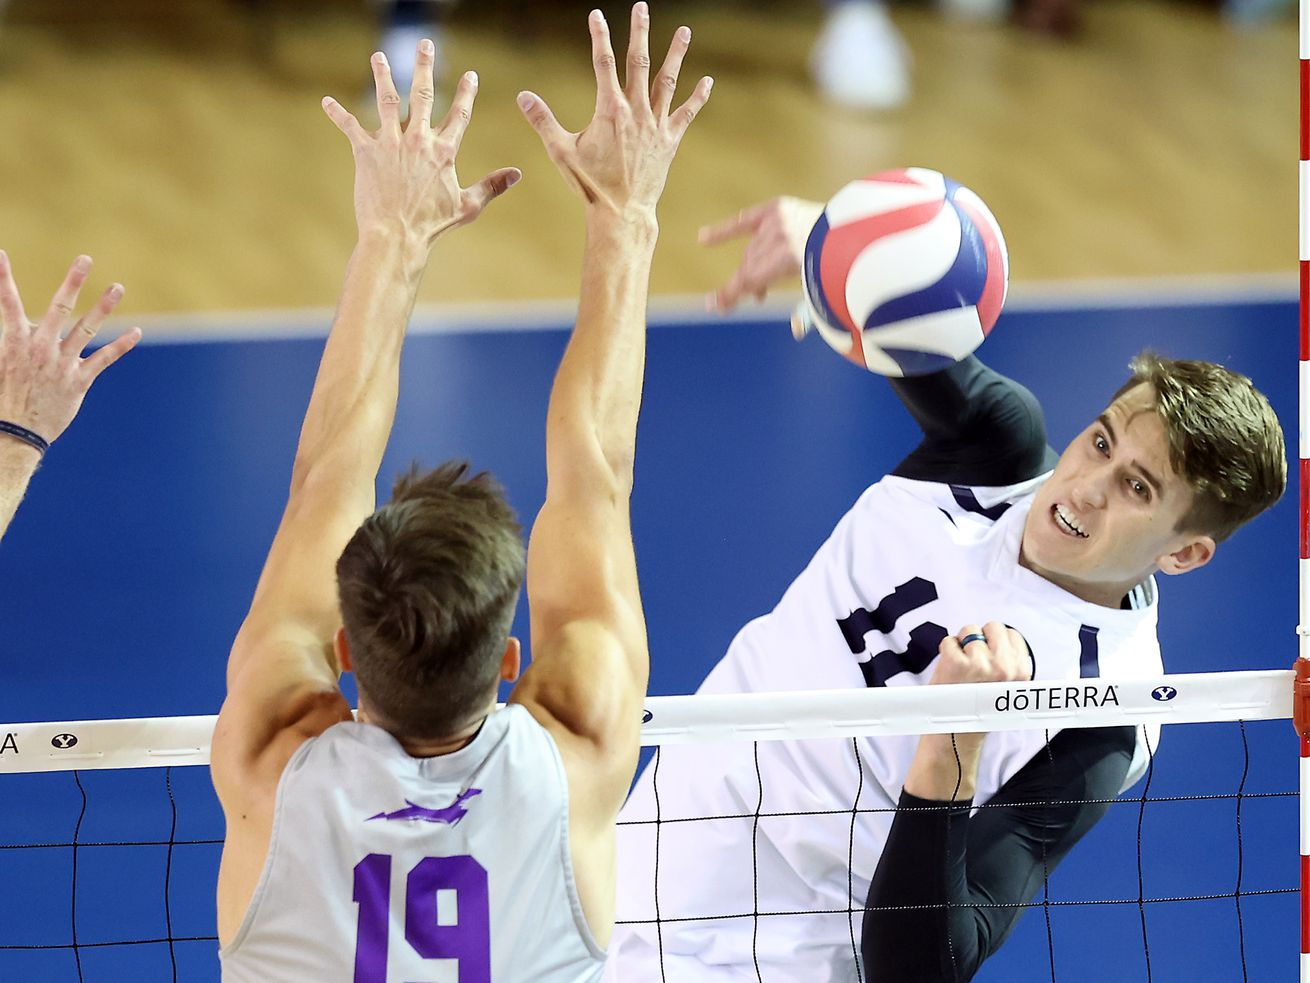 BYU's Zach Eschenberg hits the ball past Grand Canyon's Hugo Fischer as they play in the semifinals of the Mountain Pacific Sports Federation Championship at the Smith Field House in Provo on Friday, April 23, 2021.